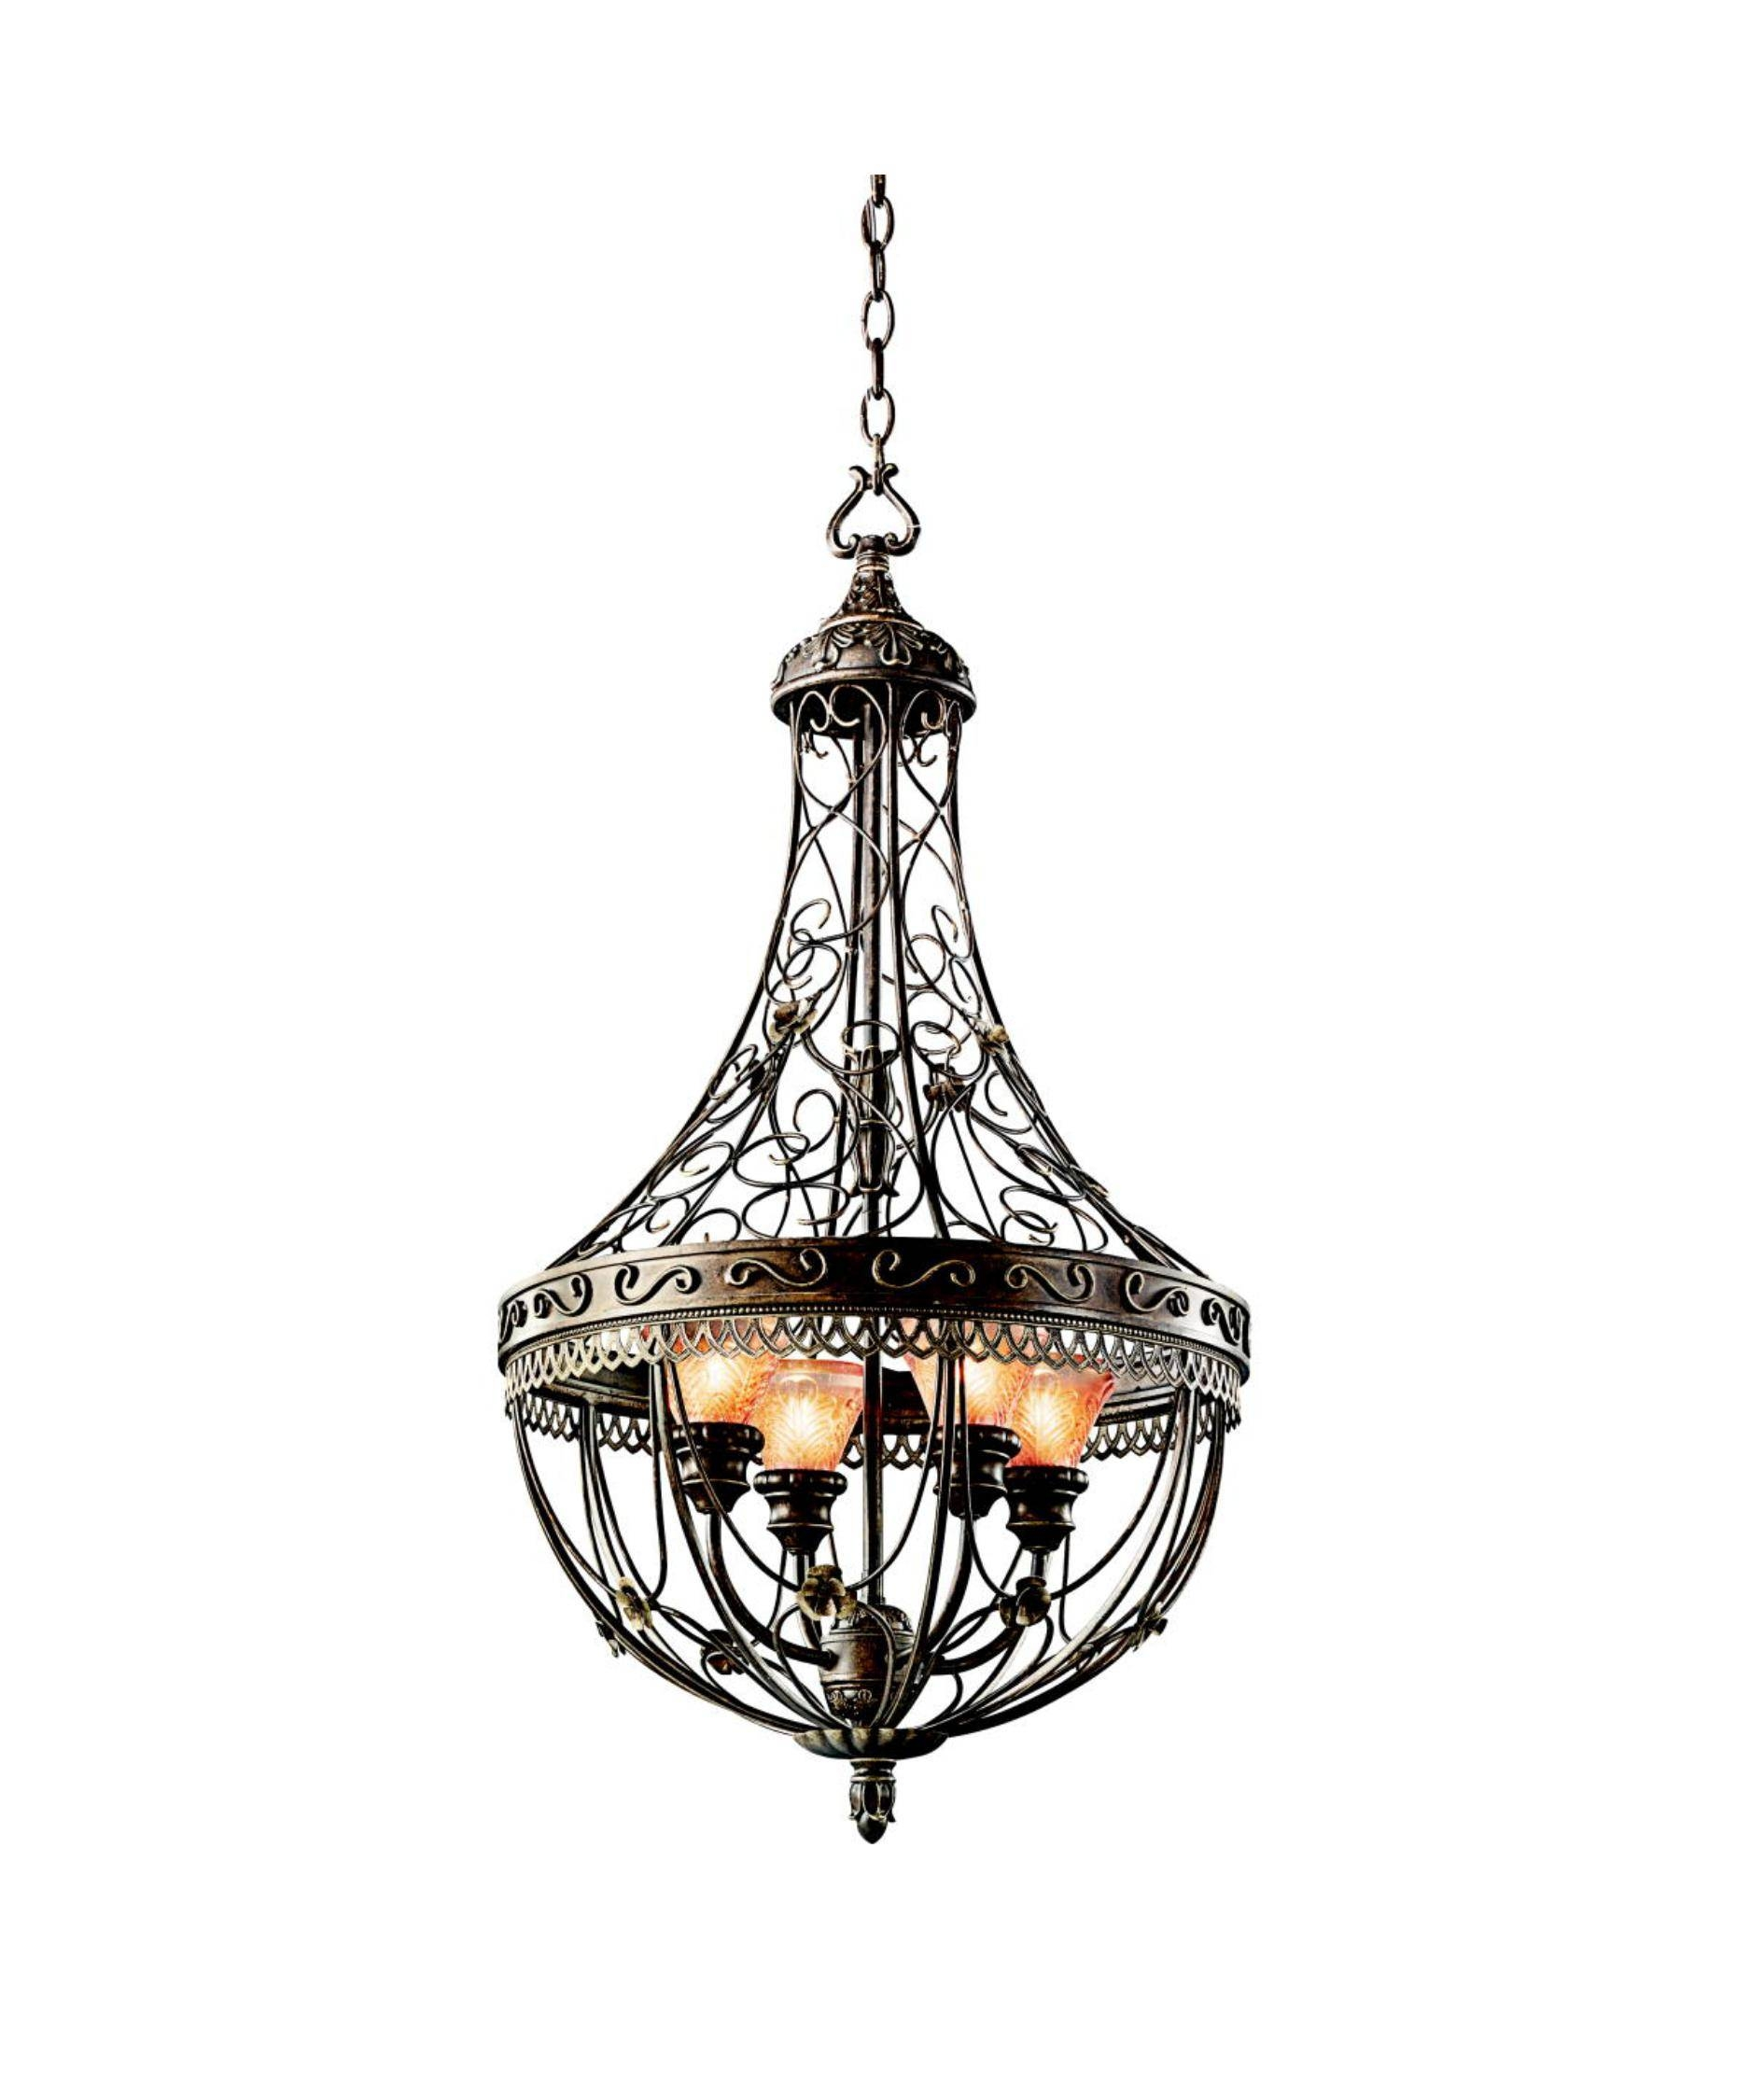 Furniture : Modern The Right Foyer Pendant Lighting For Home Regarding Foyer Pendant Light Fixtures (View 13 of 15)